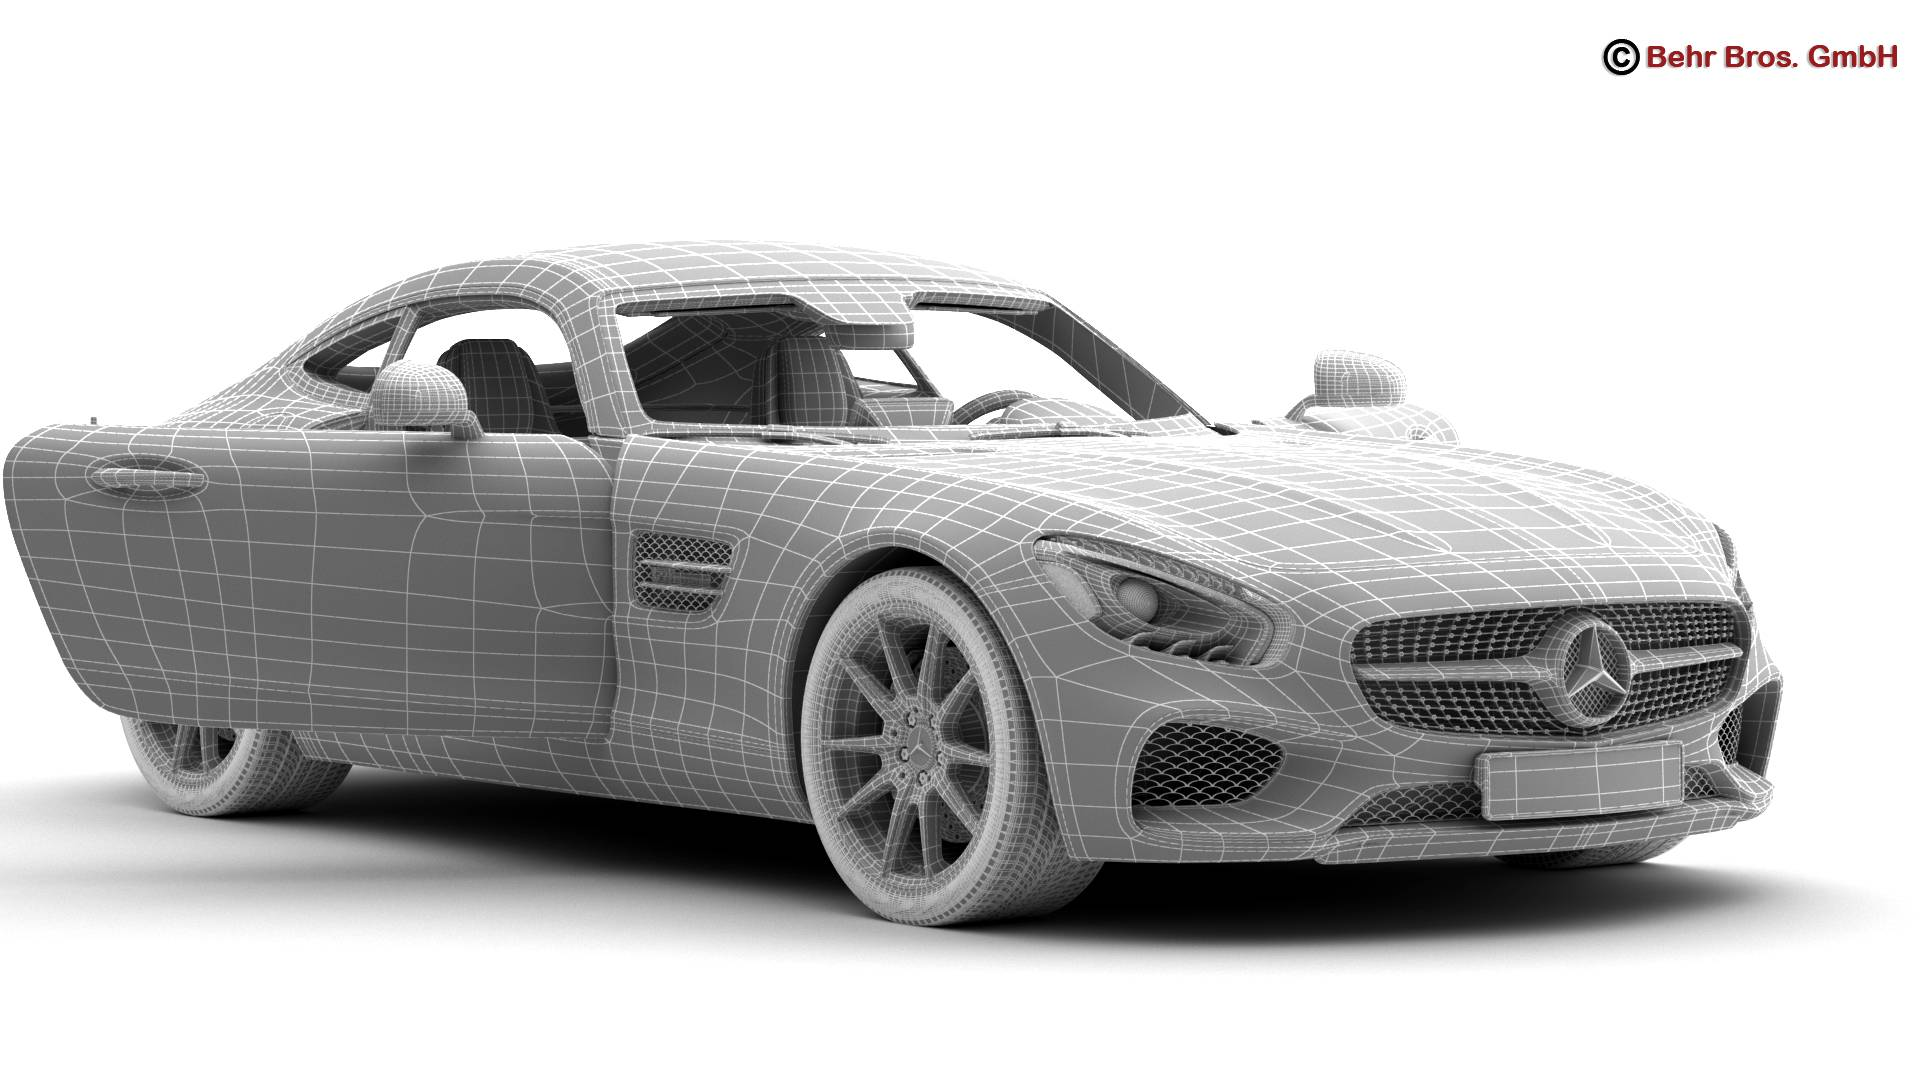 mercedes amg gt 2015 eu and us version 3d model 3ds max fbx c4d lwo ma mb obj 210129